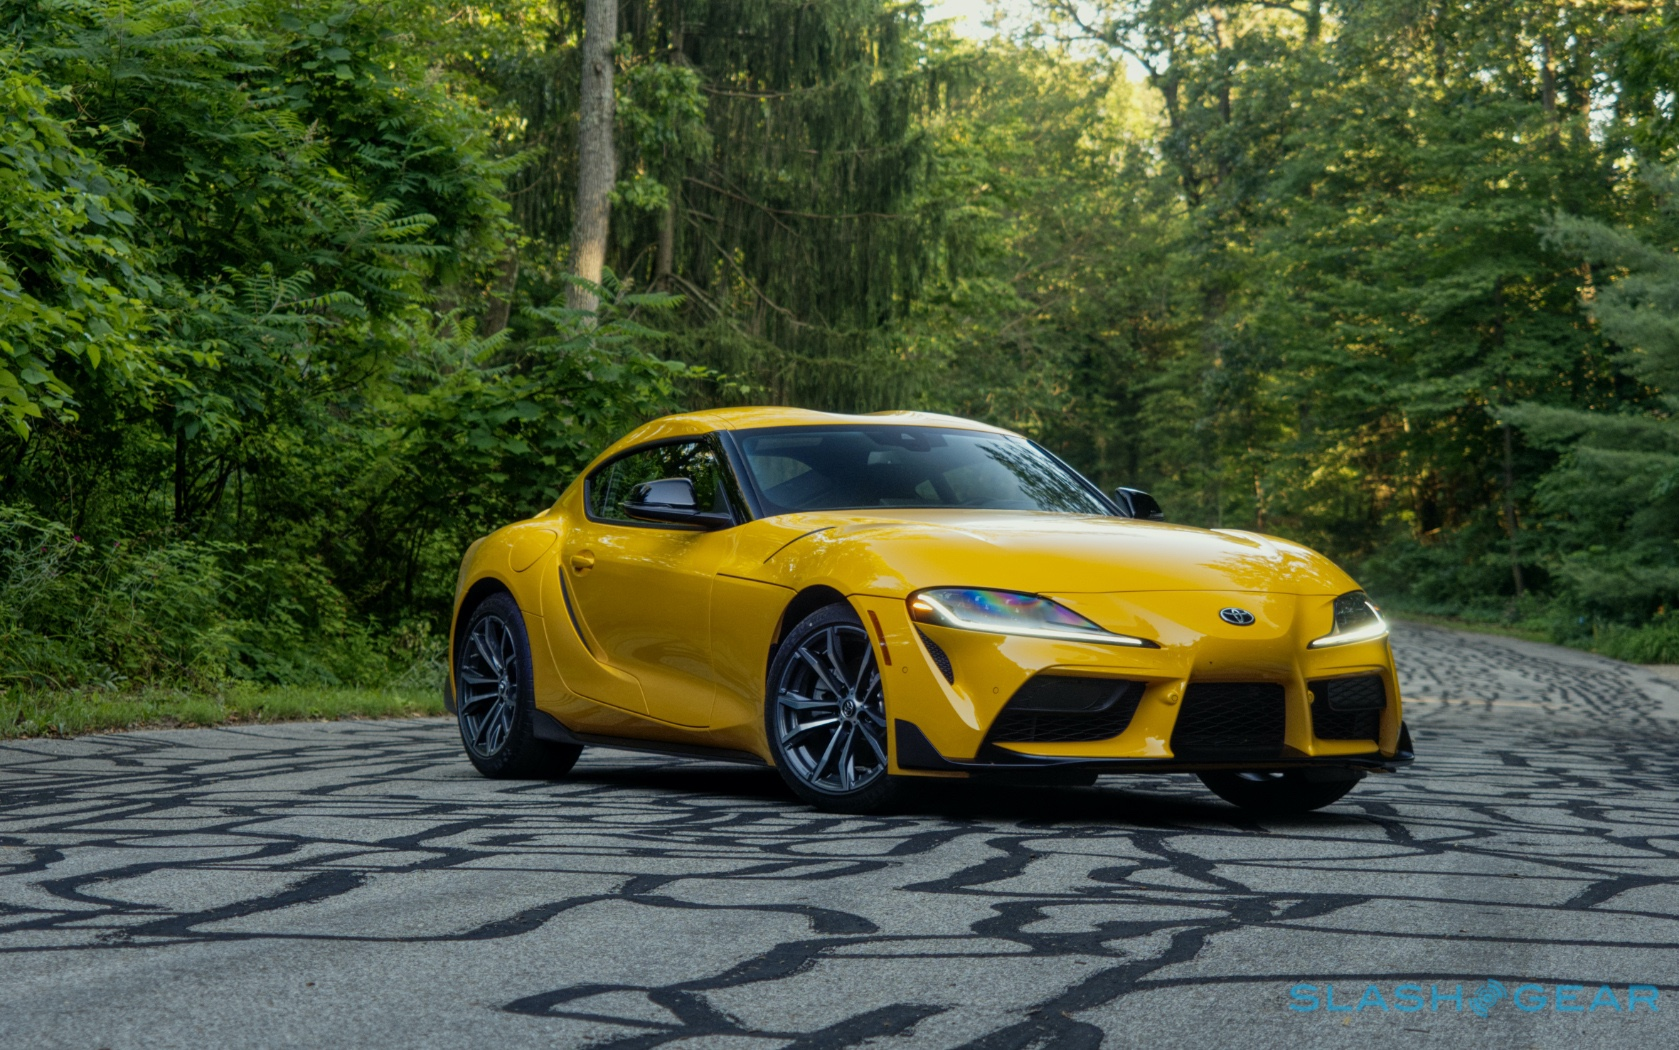 New Toyota Supra Price >> 2021 Toyota Supra 2.0 Review – When Less is More - SlashGear